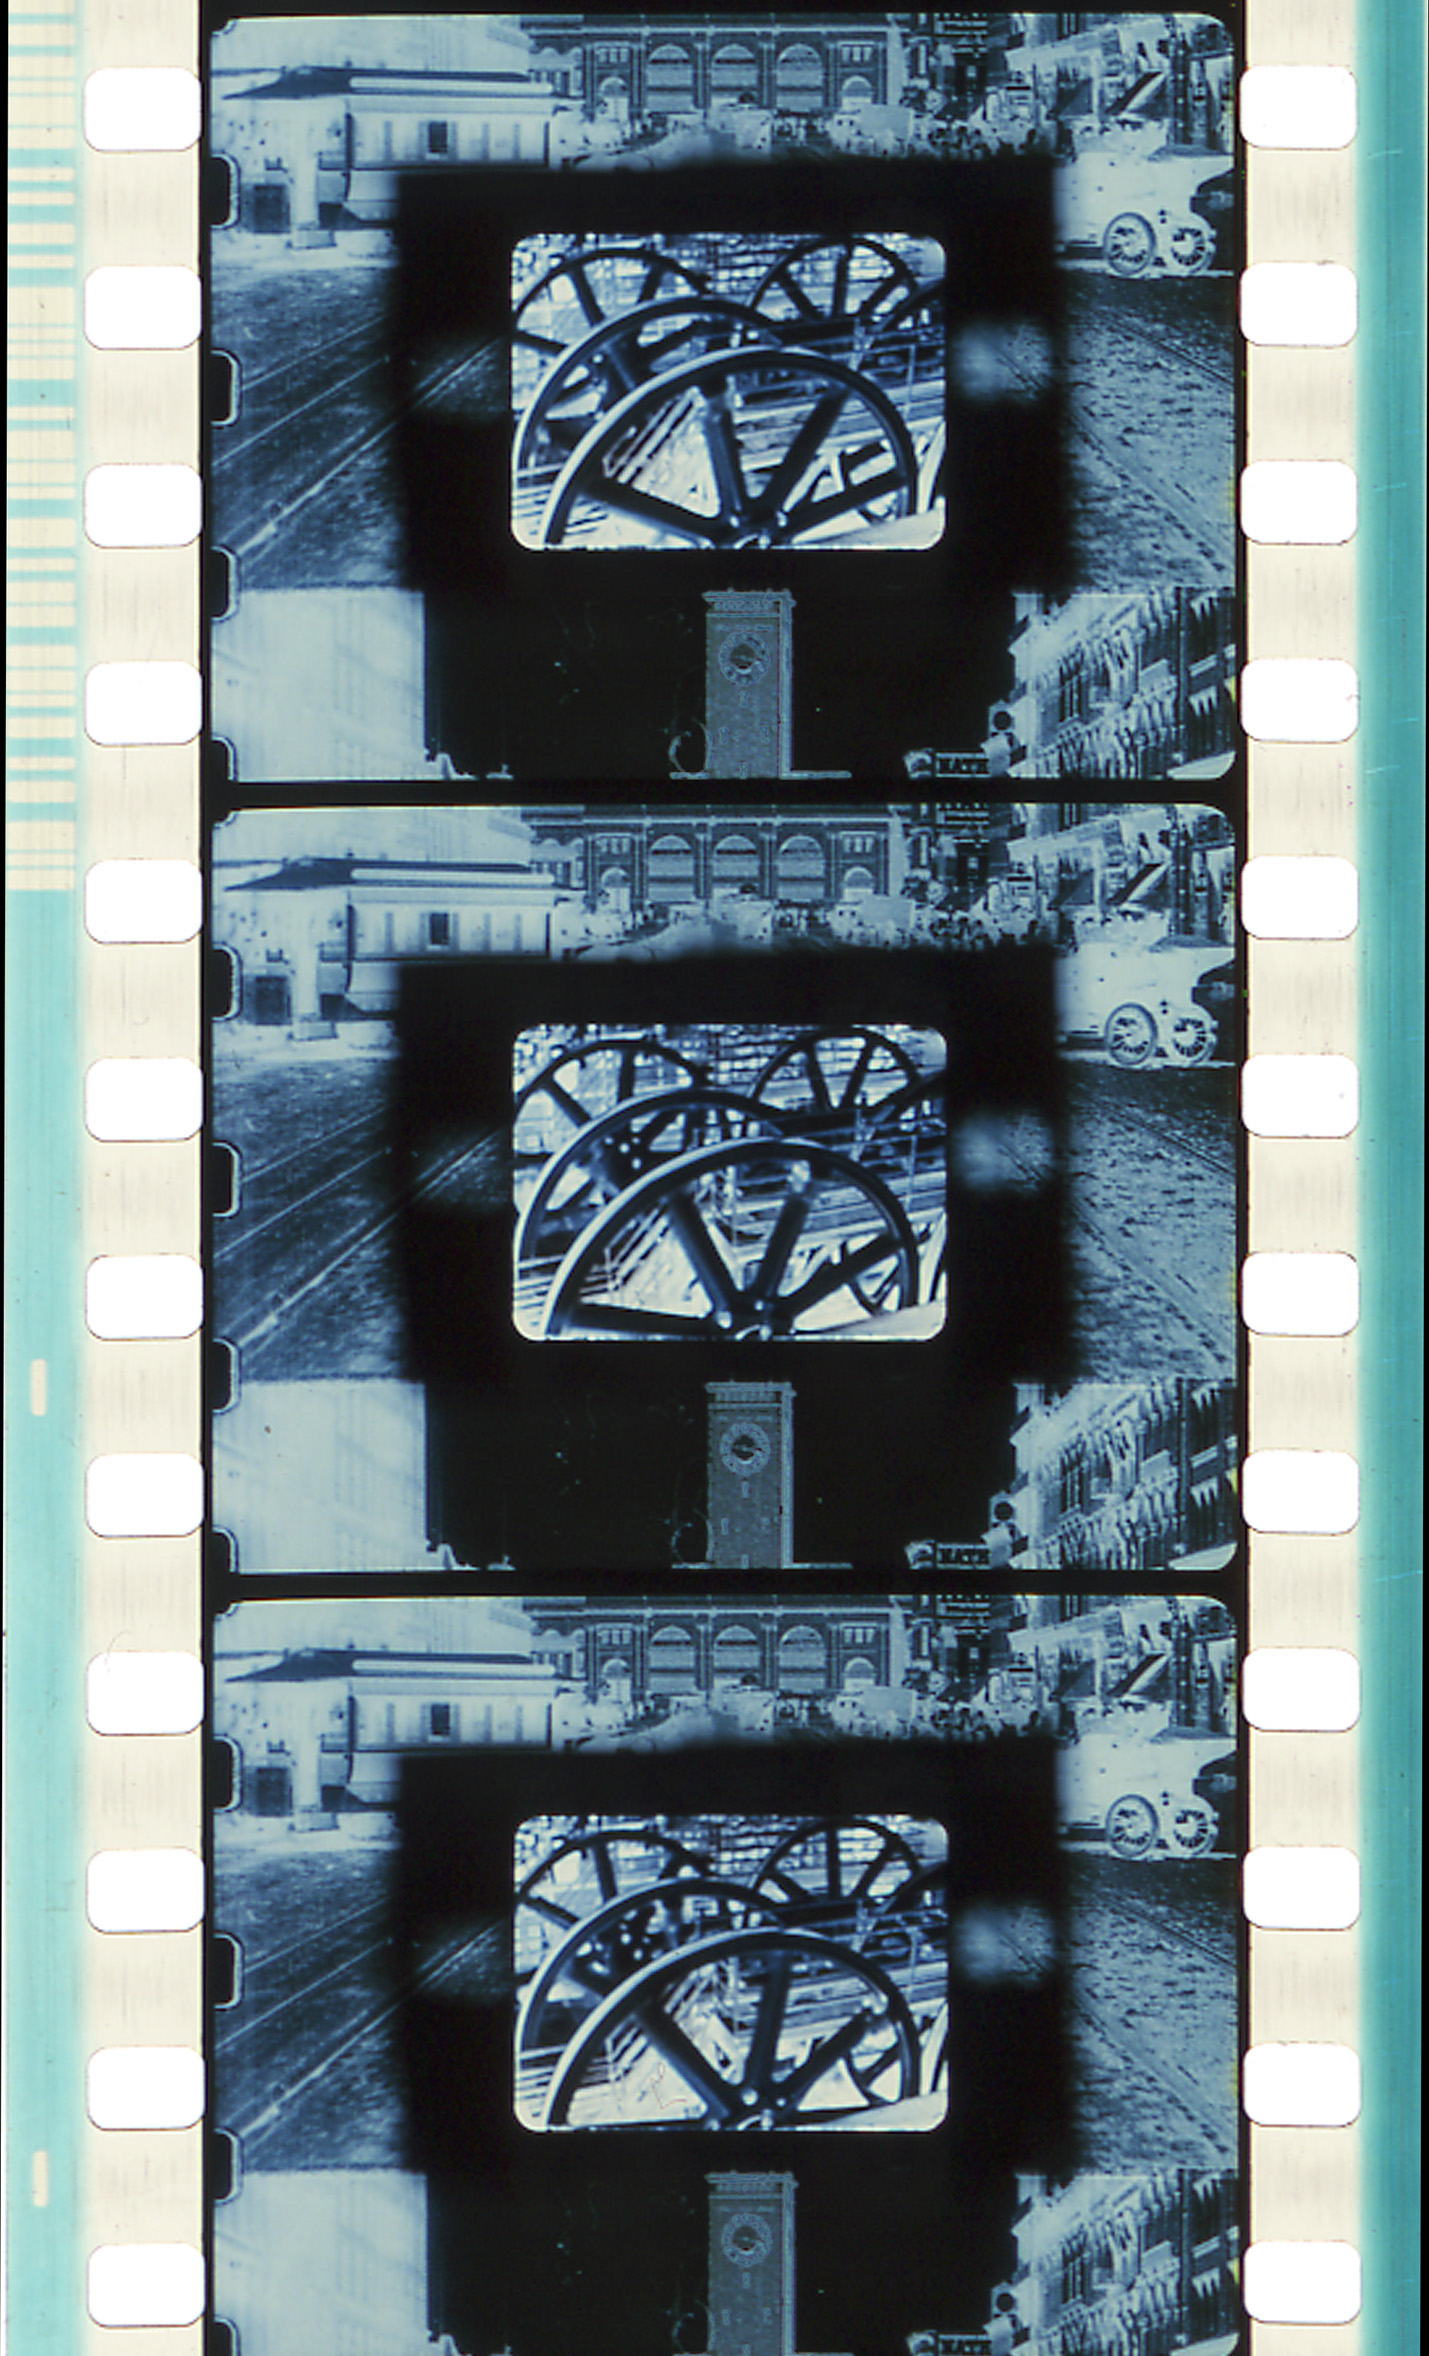 Canyon Cinema : Films by Kerry Laitala now distributed by